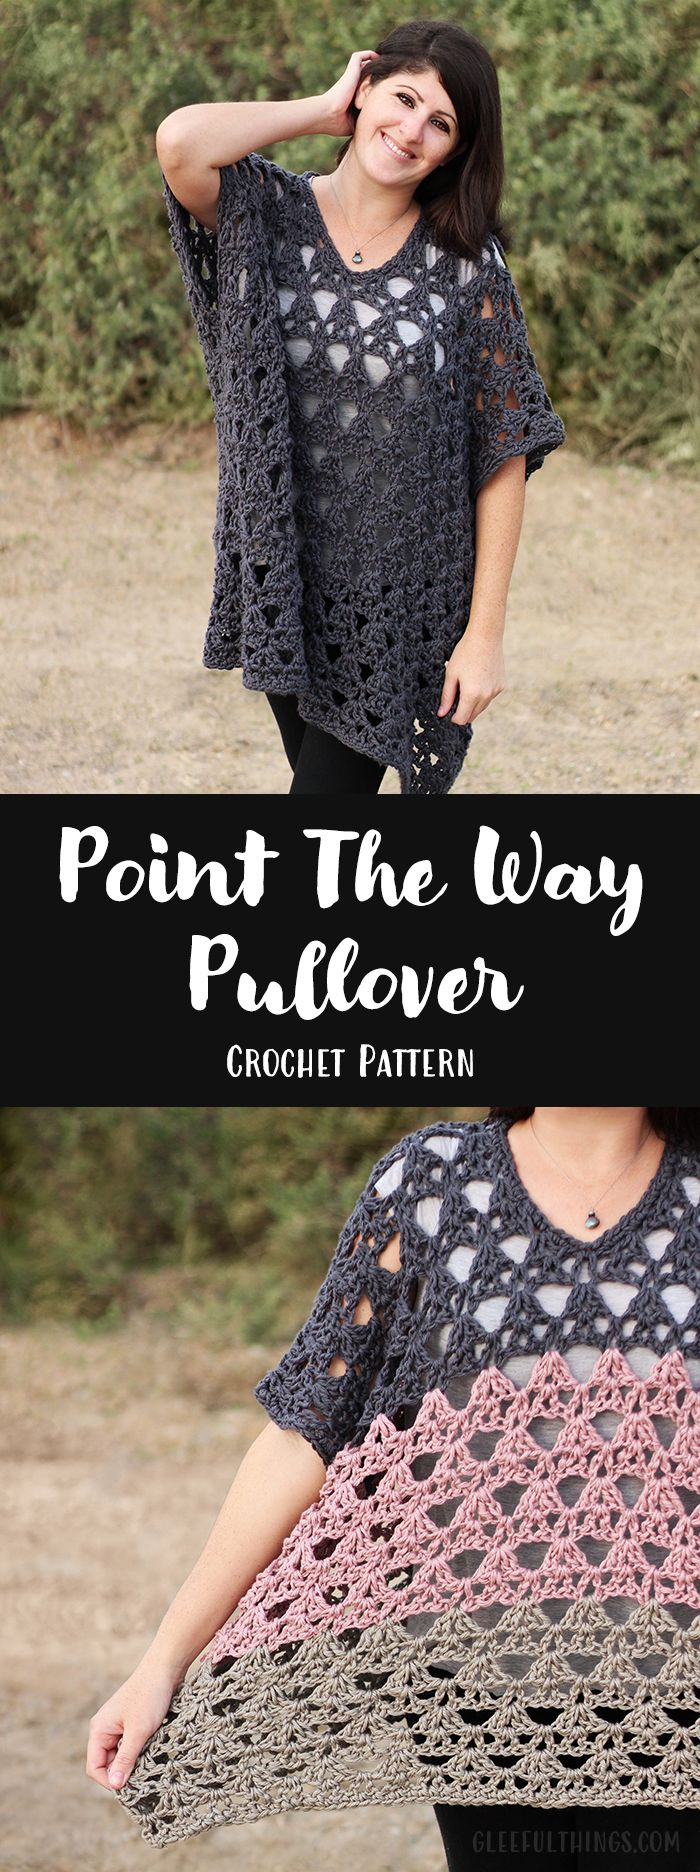 New Crochet Pattern: Point The Way Pullover | Pullover, Weg und Muster